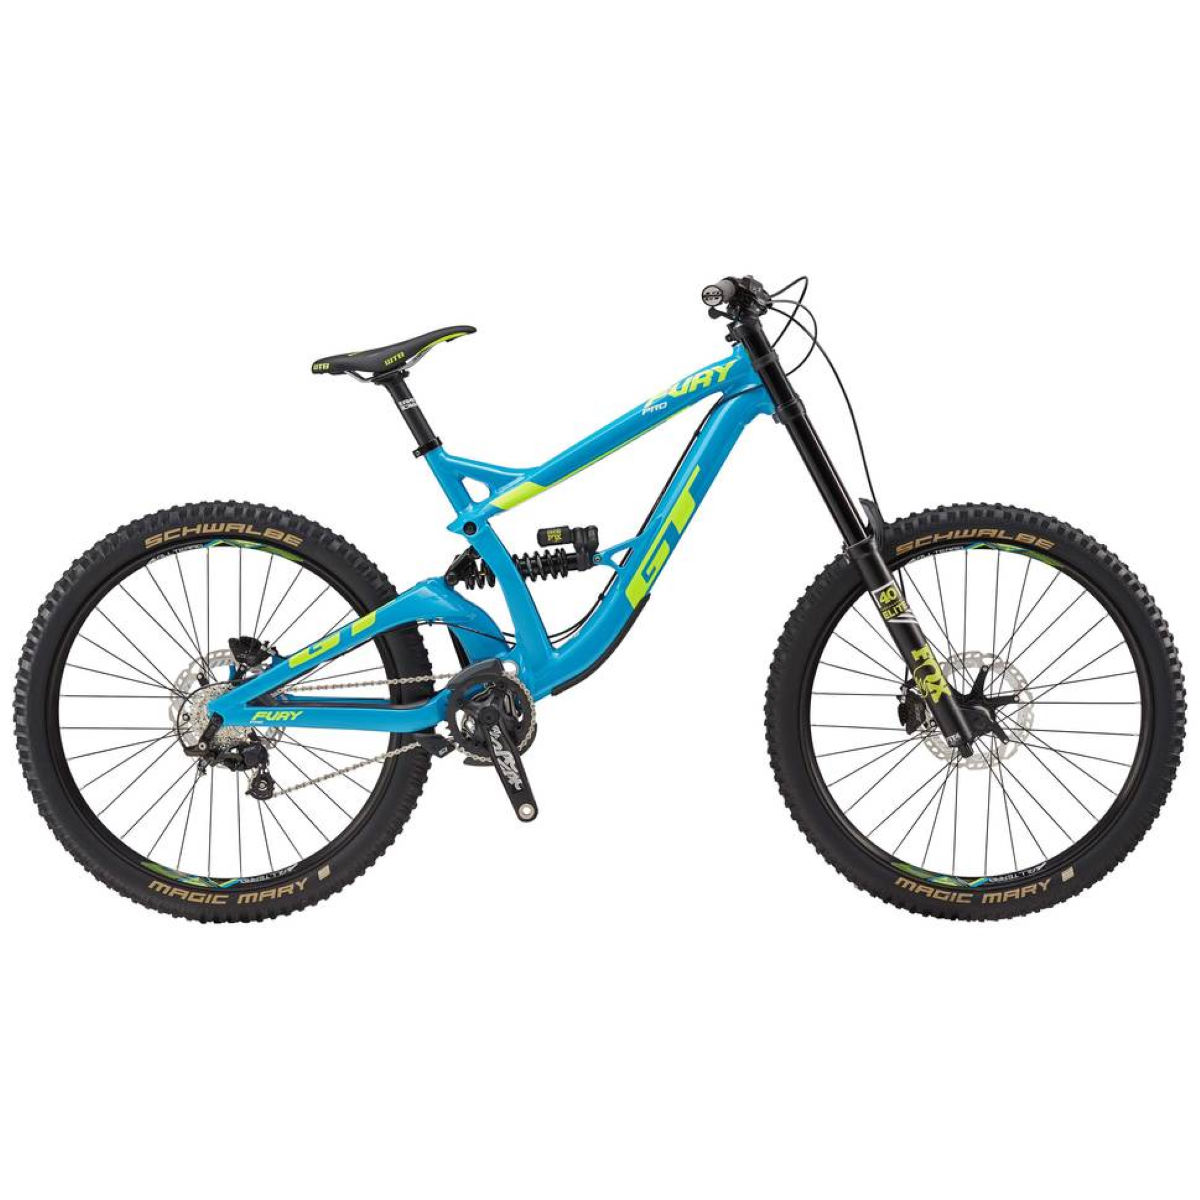 GT Fury Pro (2017) Mountain Bike - L Stock Bike Cyan VTT tout suspendu